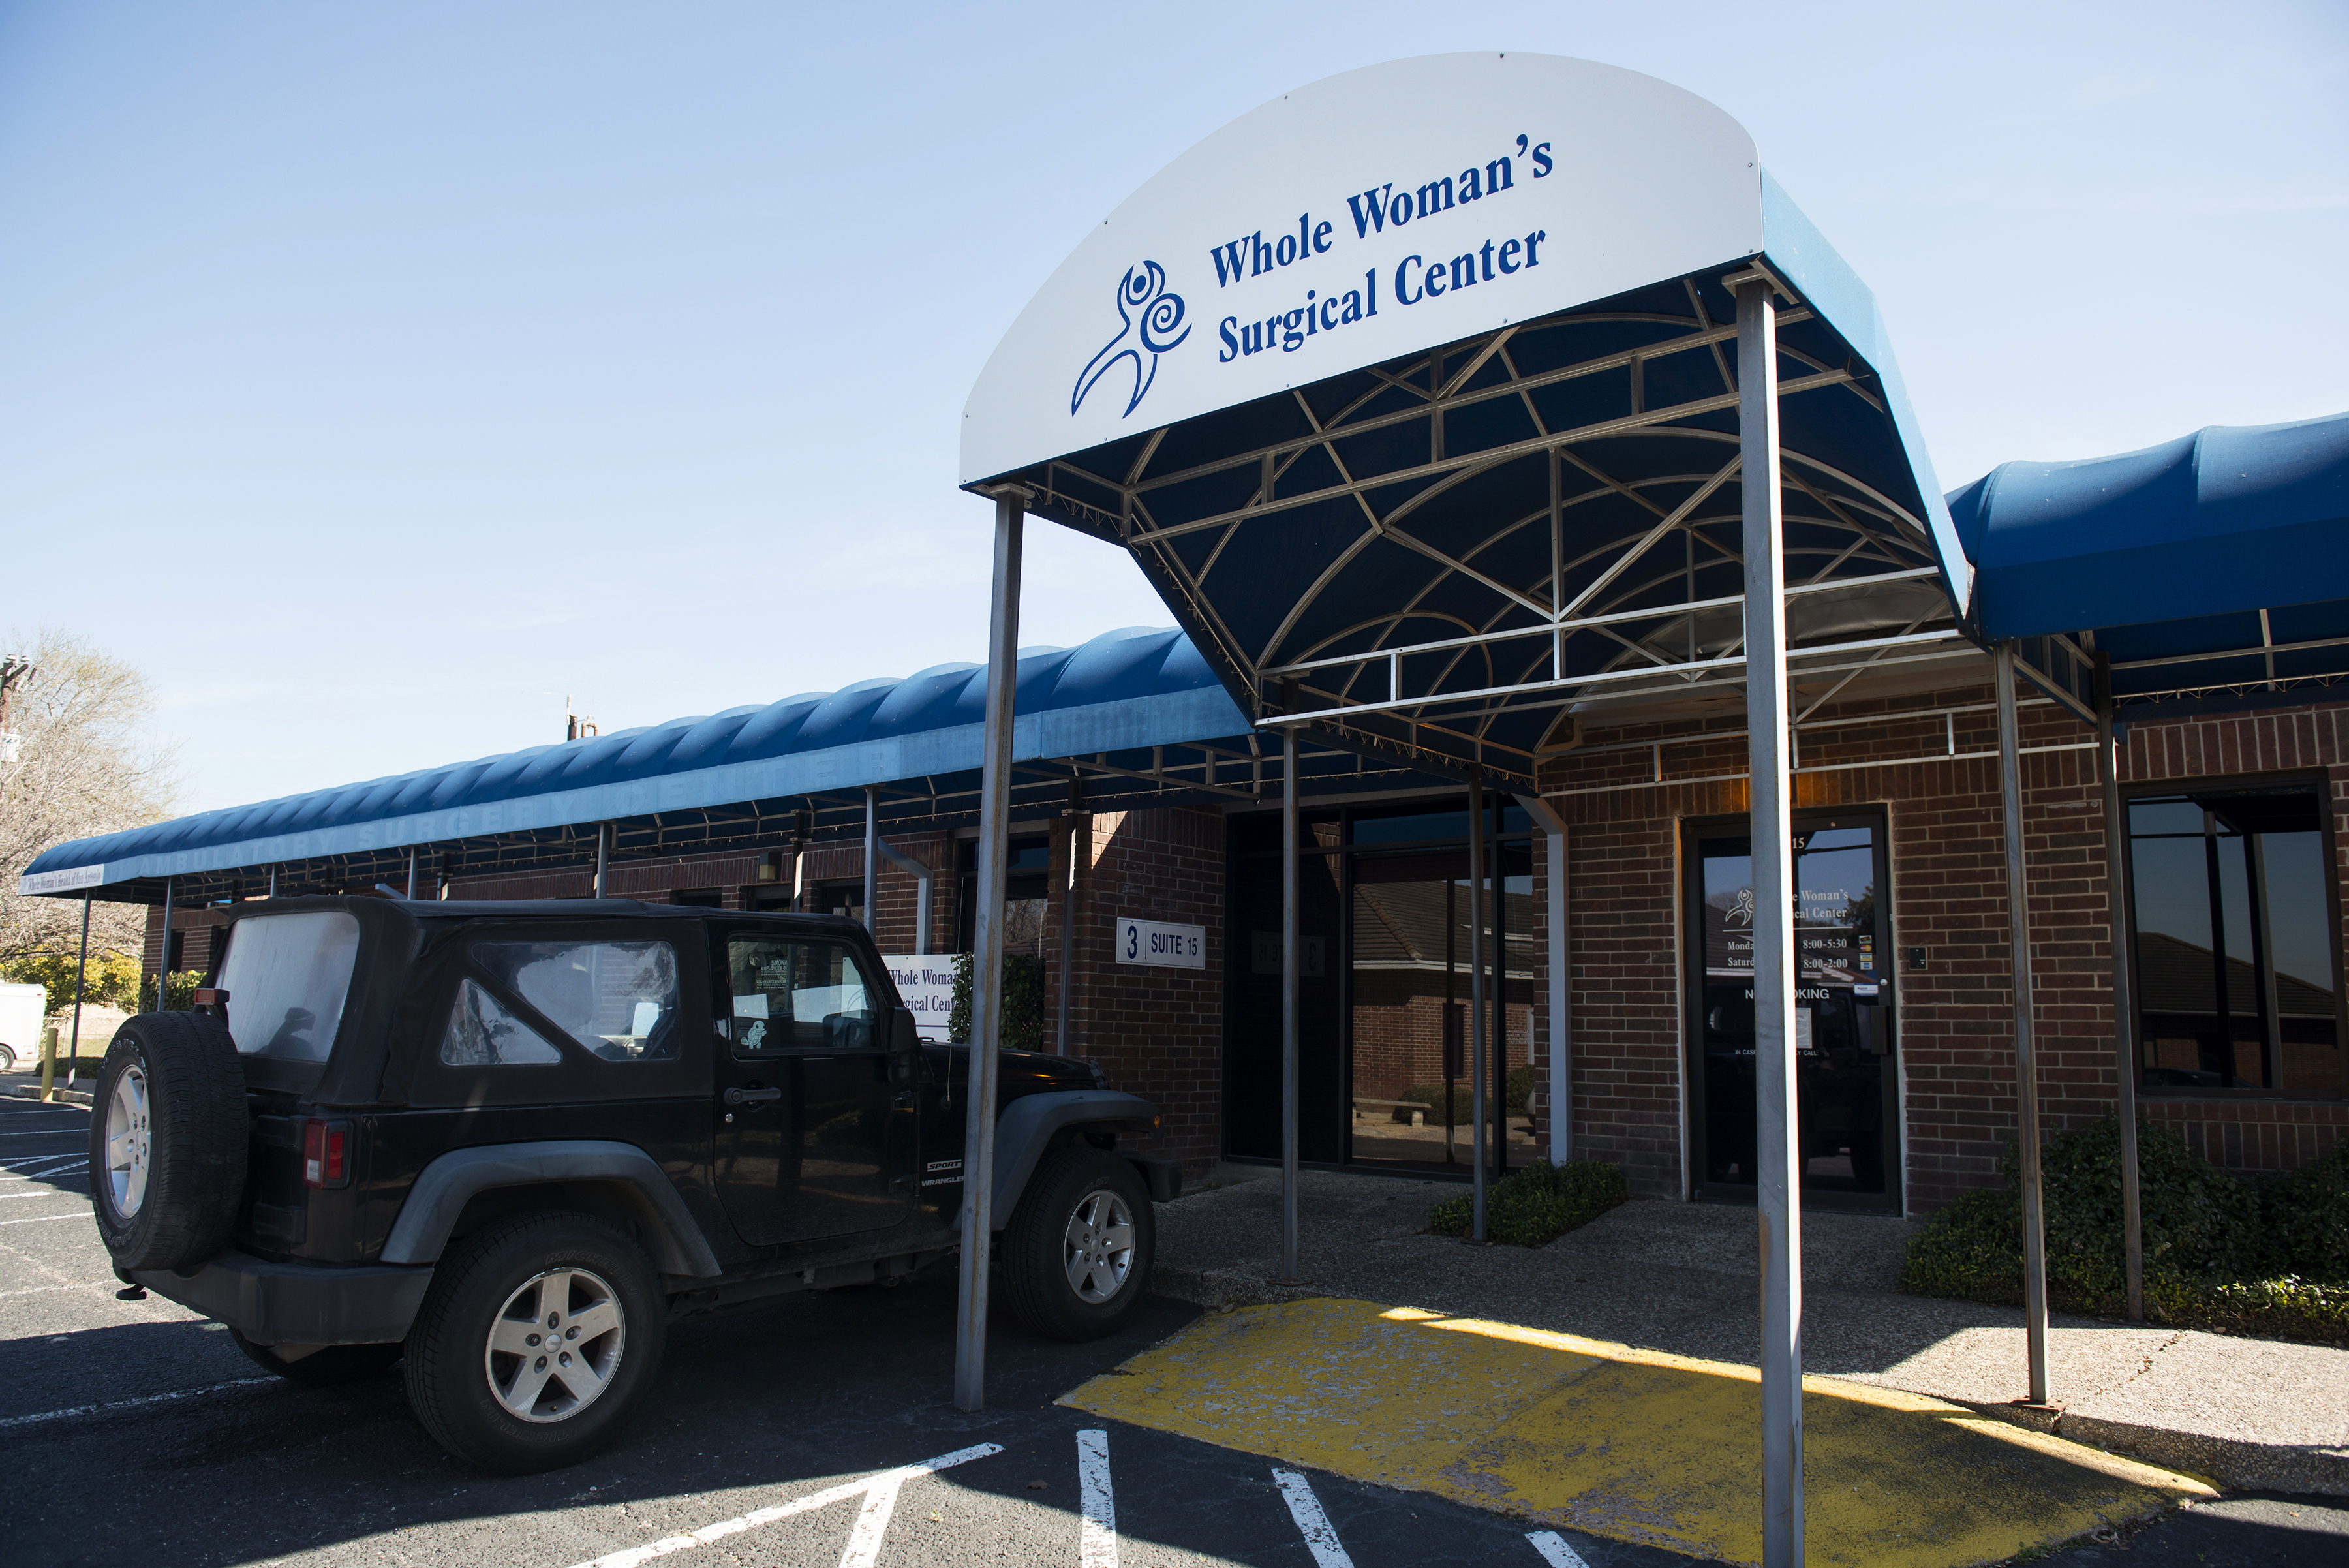 The Whole Woman's Health abortion clinic in San Antonio, Texas, on Feb. 16, 2016.